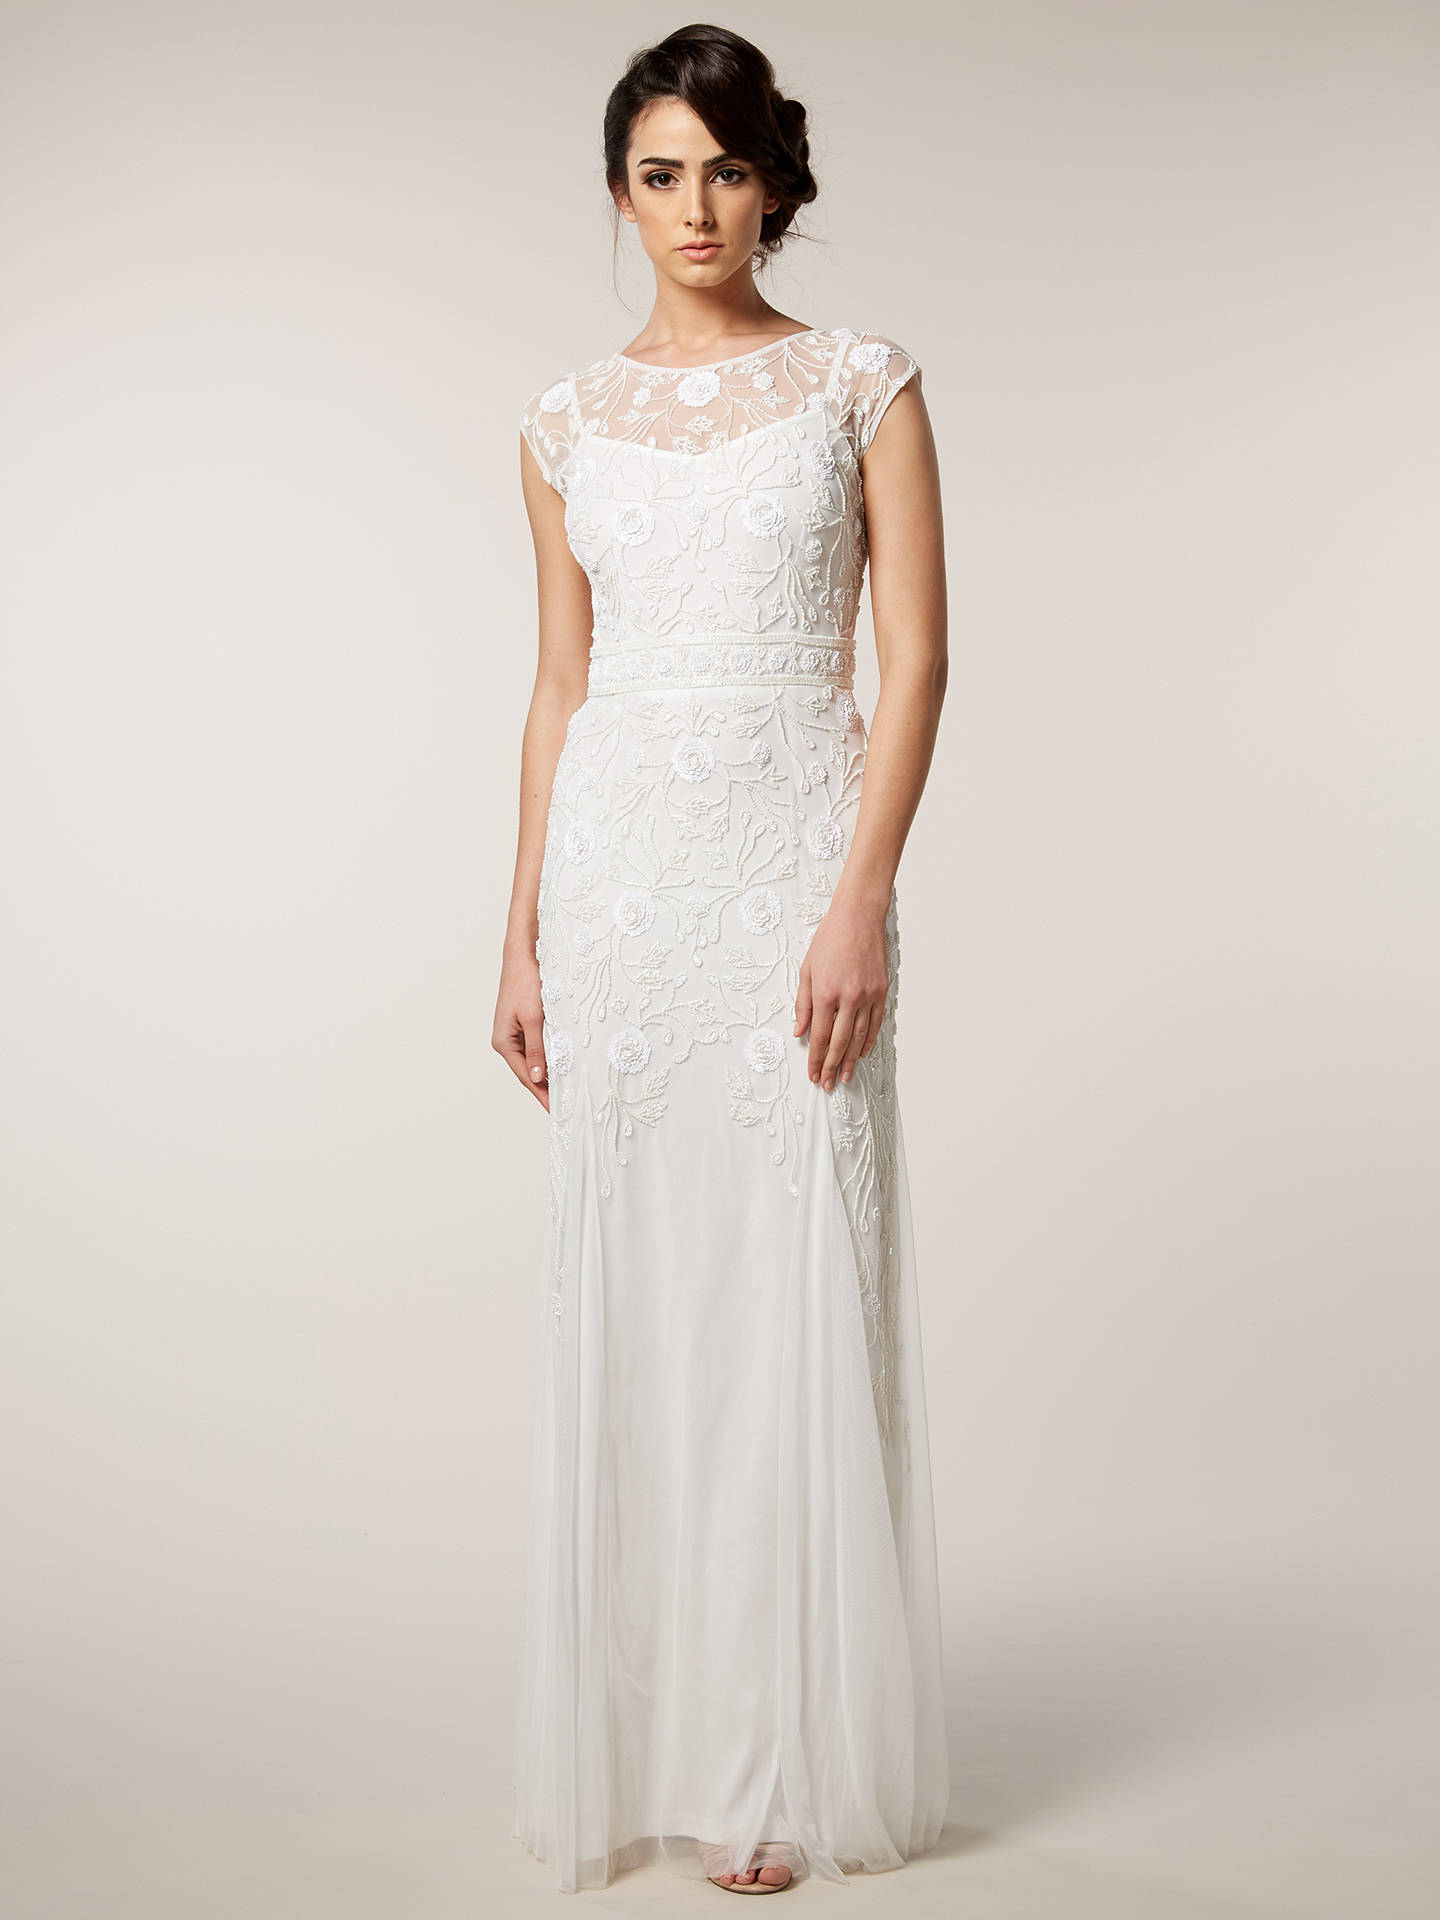 BuyRaishma Net Embellished Gown, White, 8 Online at johnlewis.com